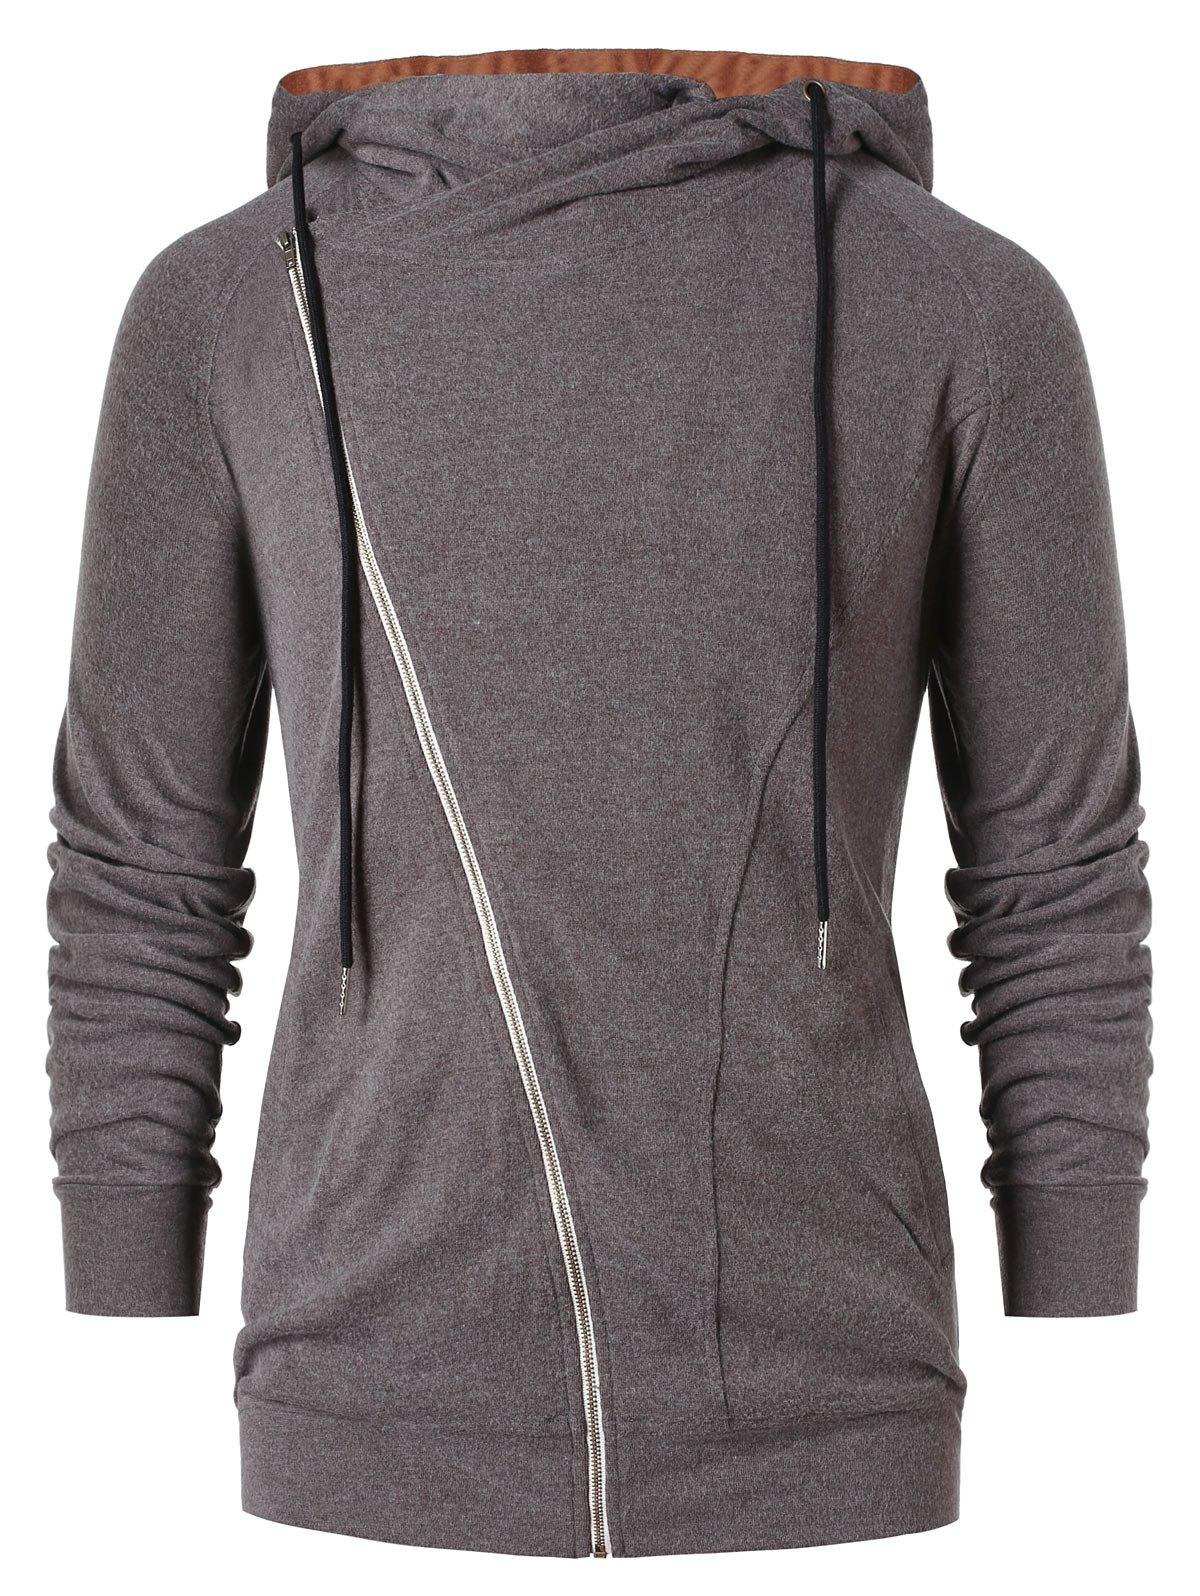 Asymmetric Zip Color Block Hoodie - DARK GRAY L